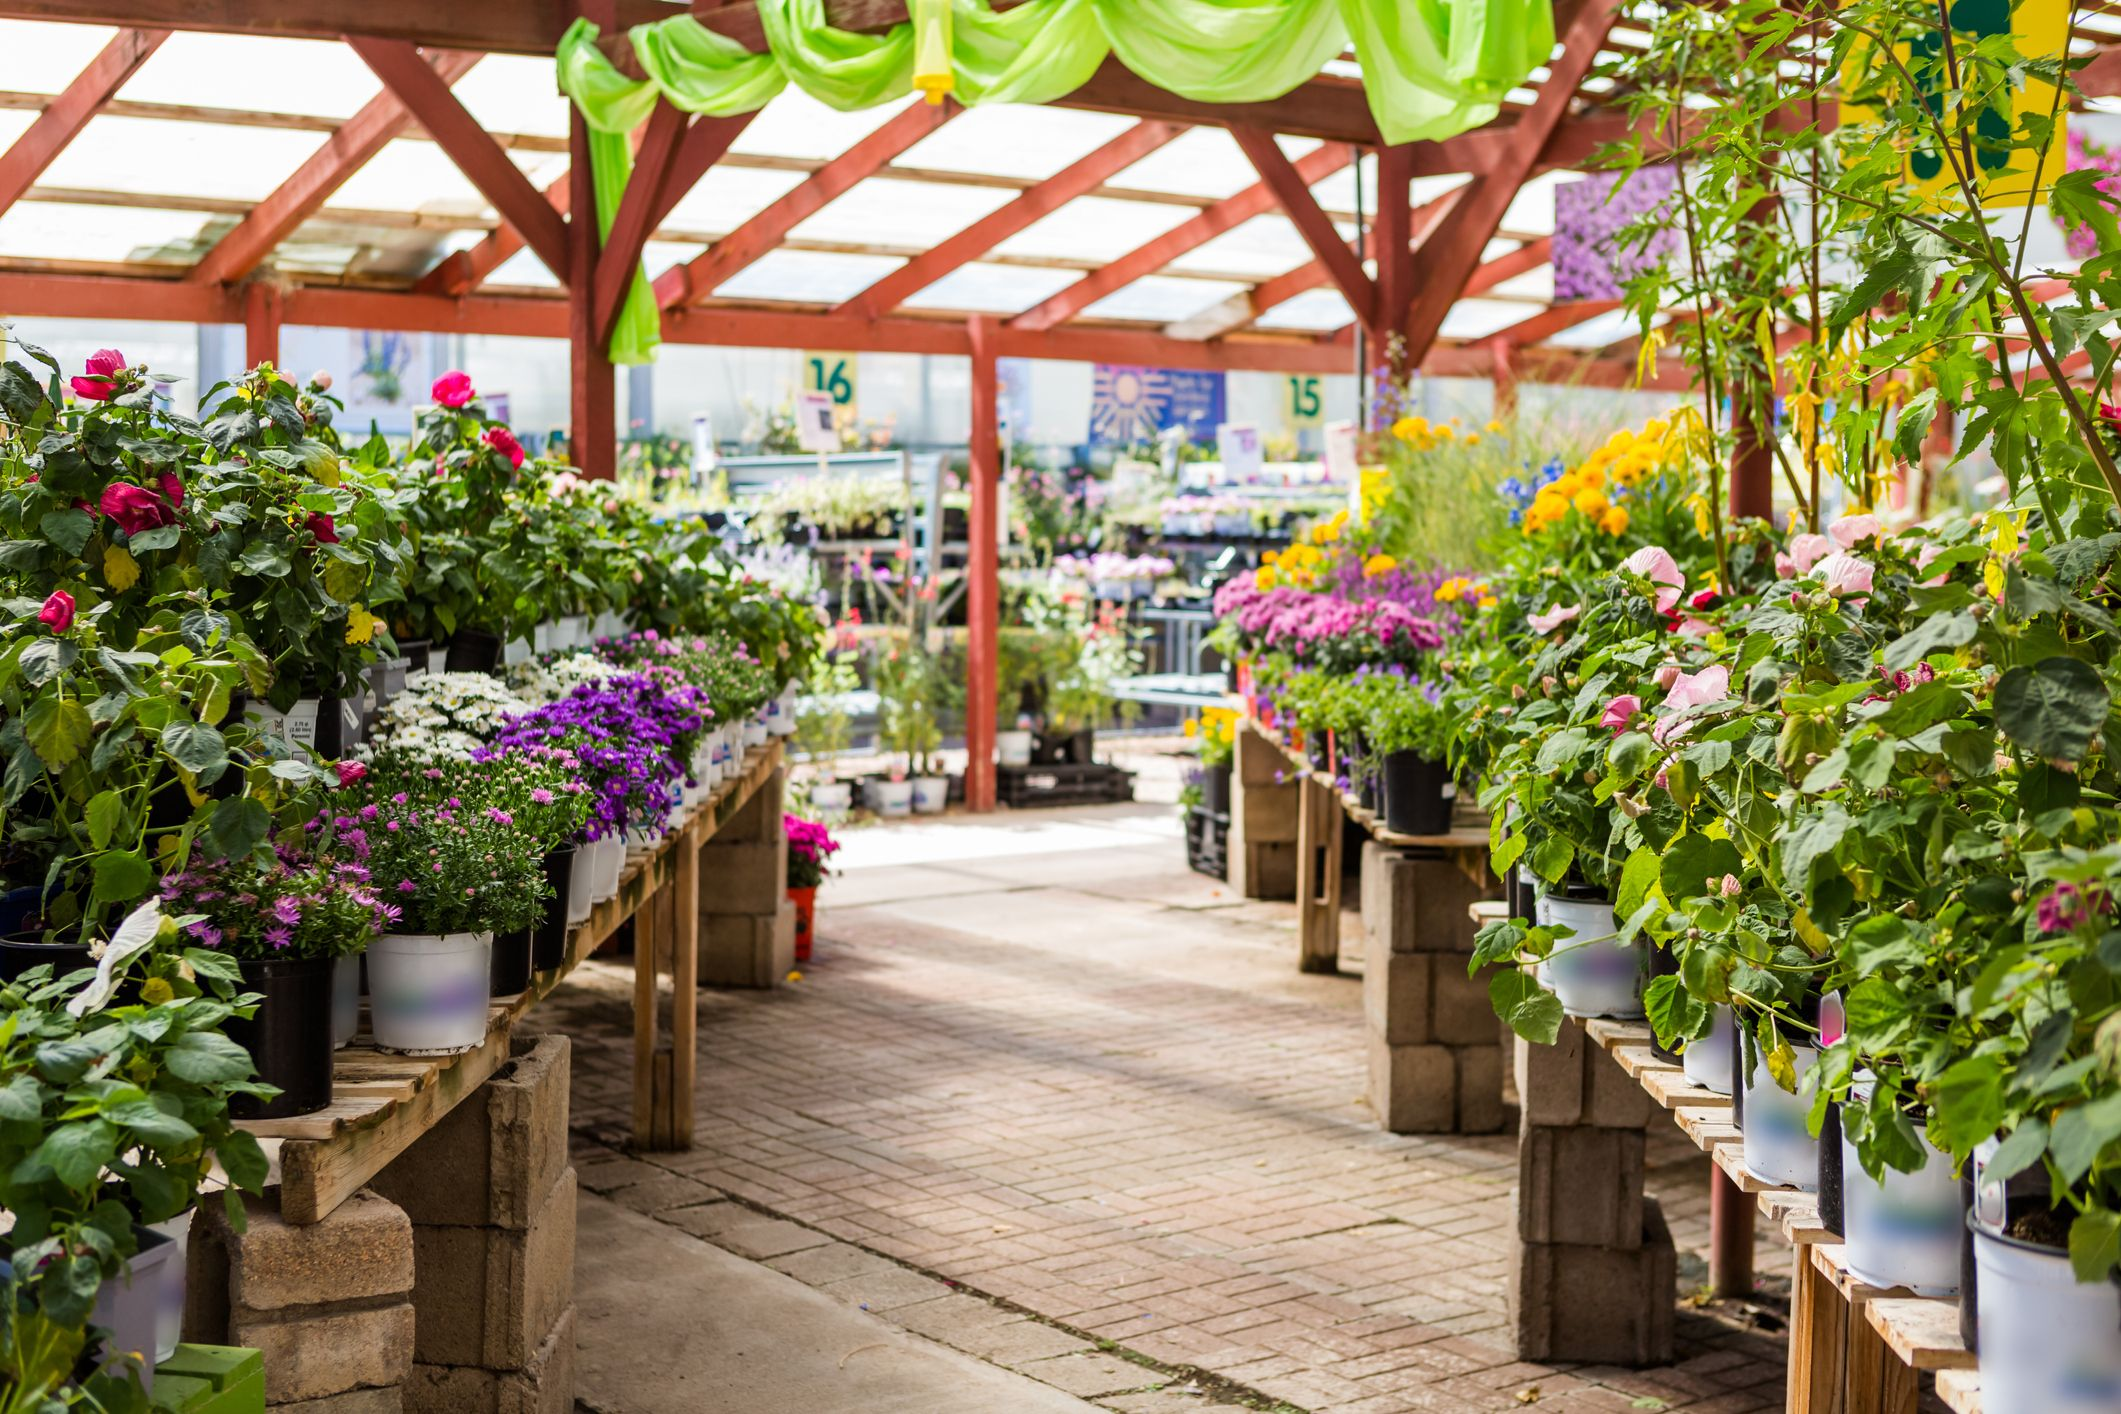 Second lockdown: Will garden centres in England remain open?